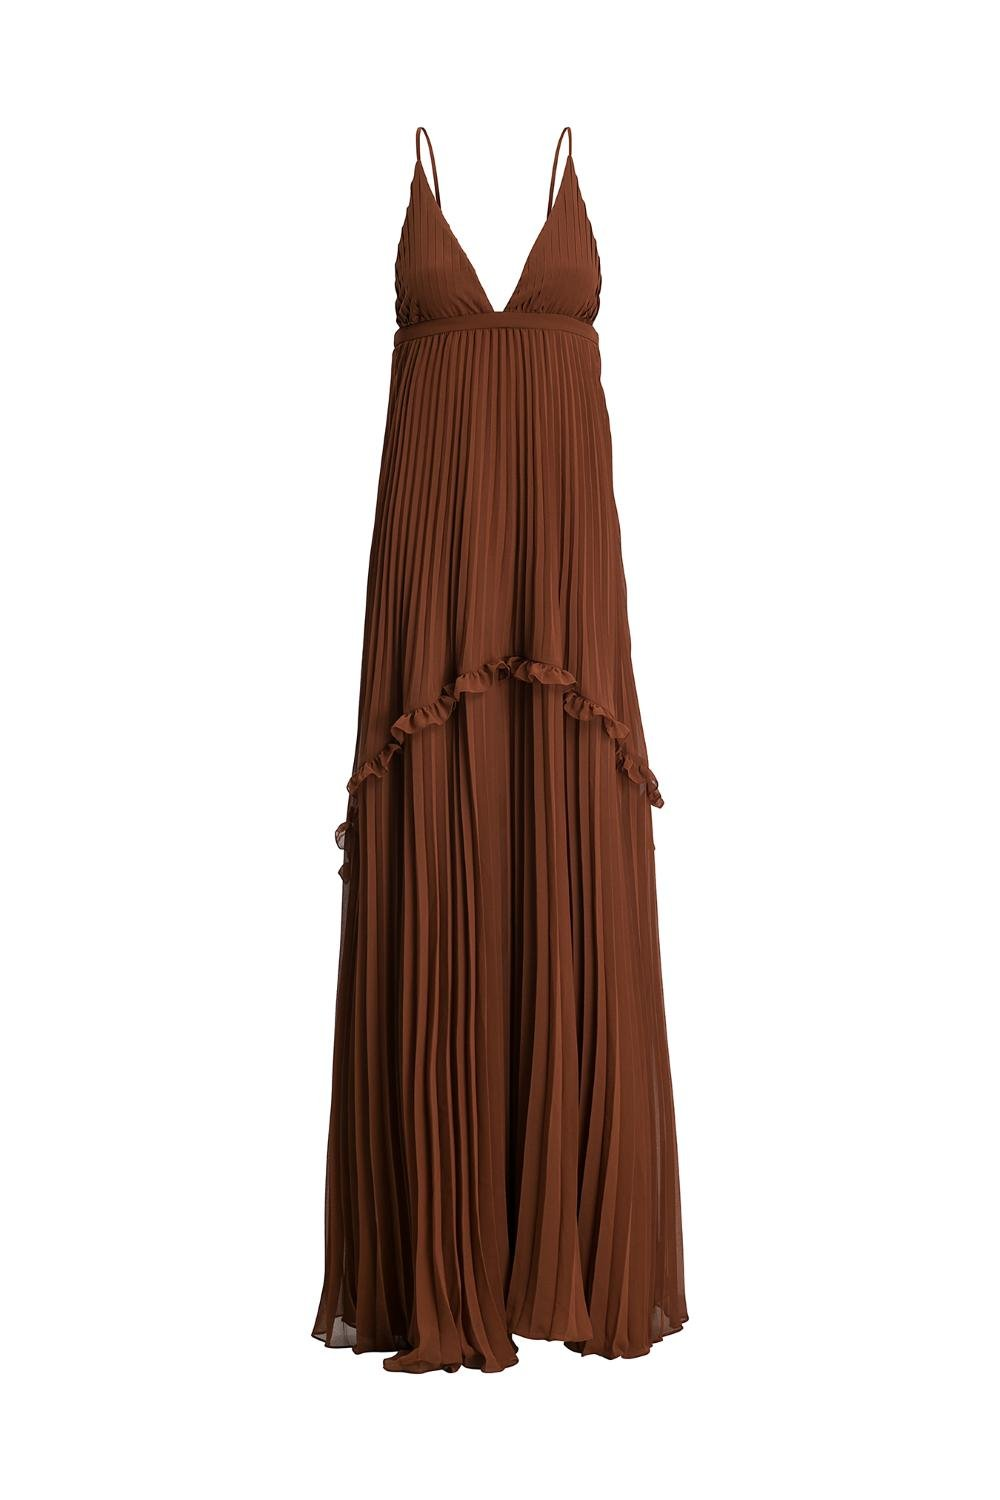 Cinque Terre Long Dress with Straps